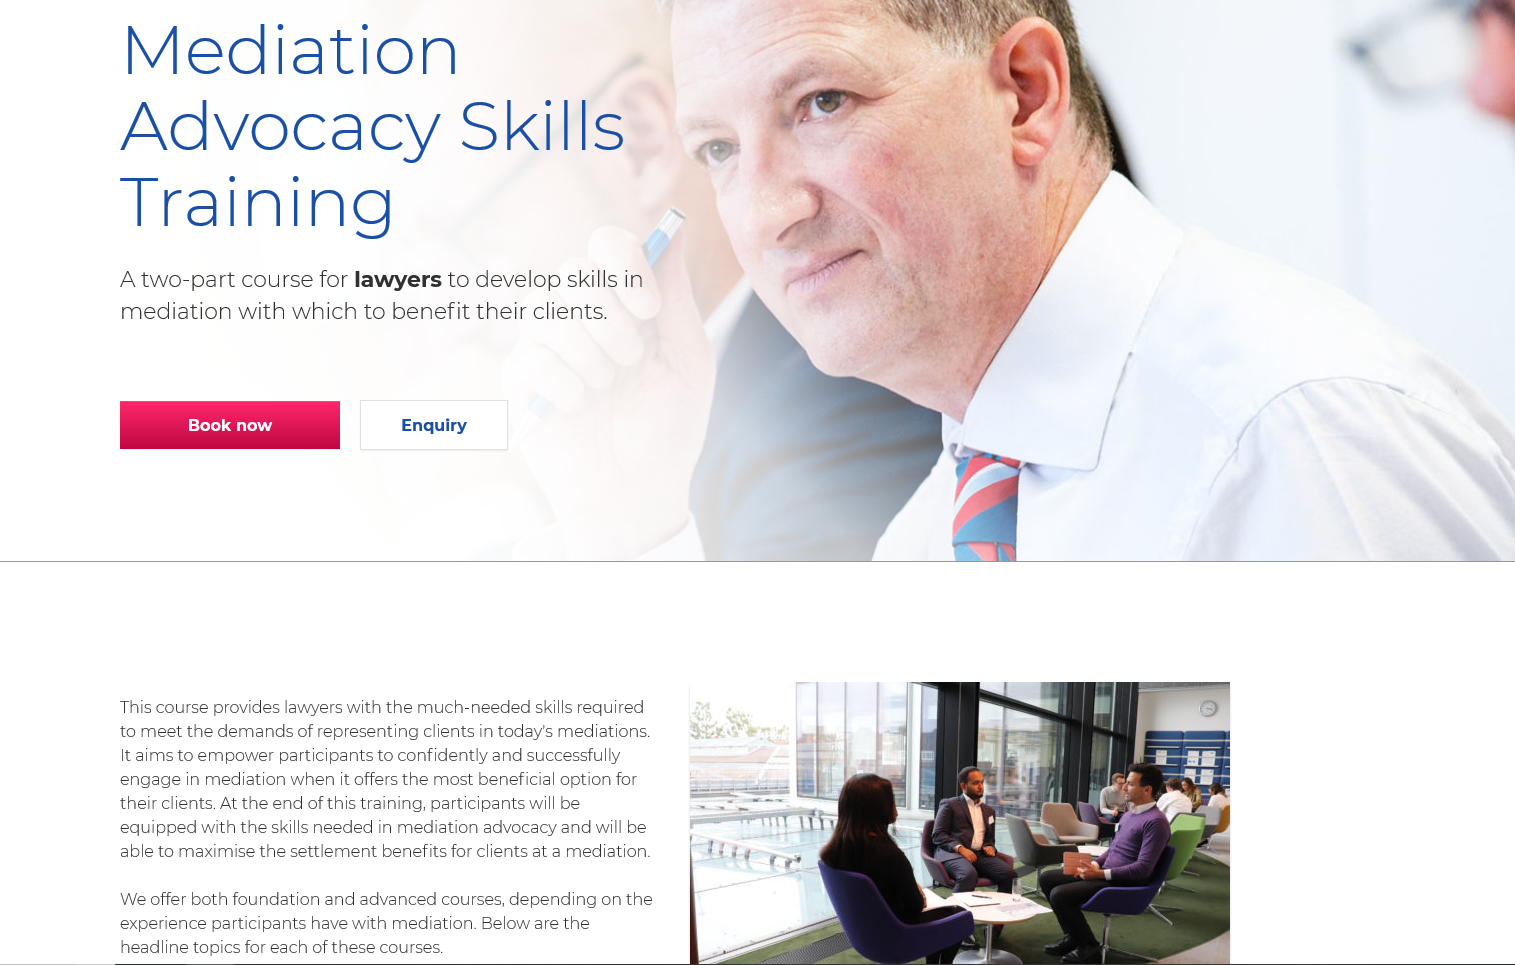 CEDR - mediation training for lawyers